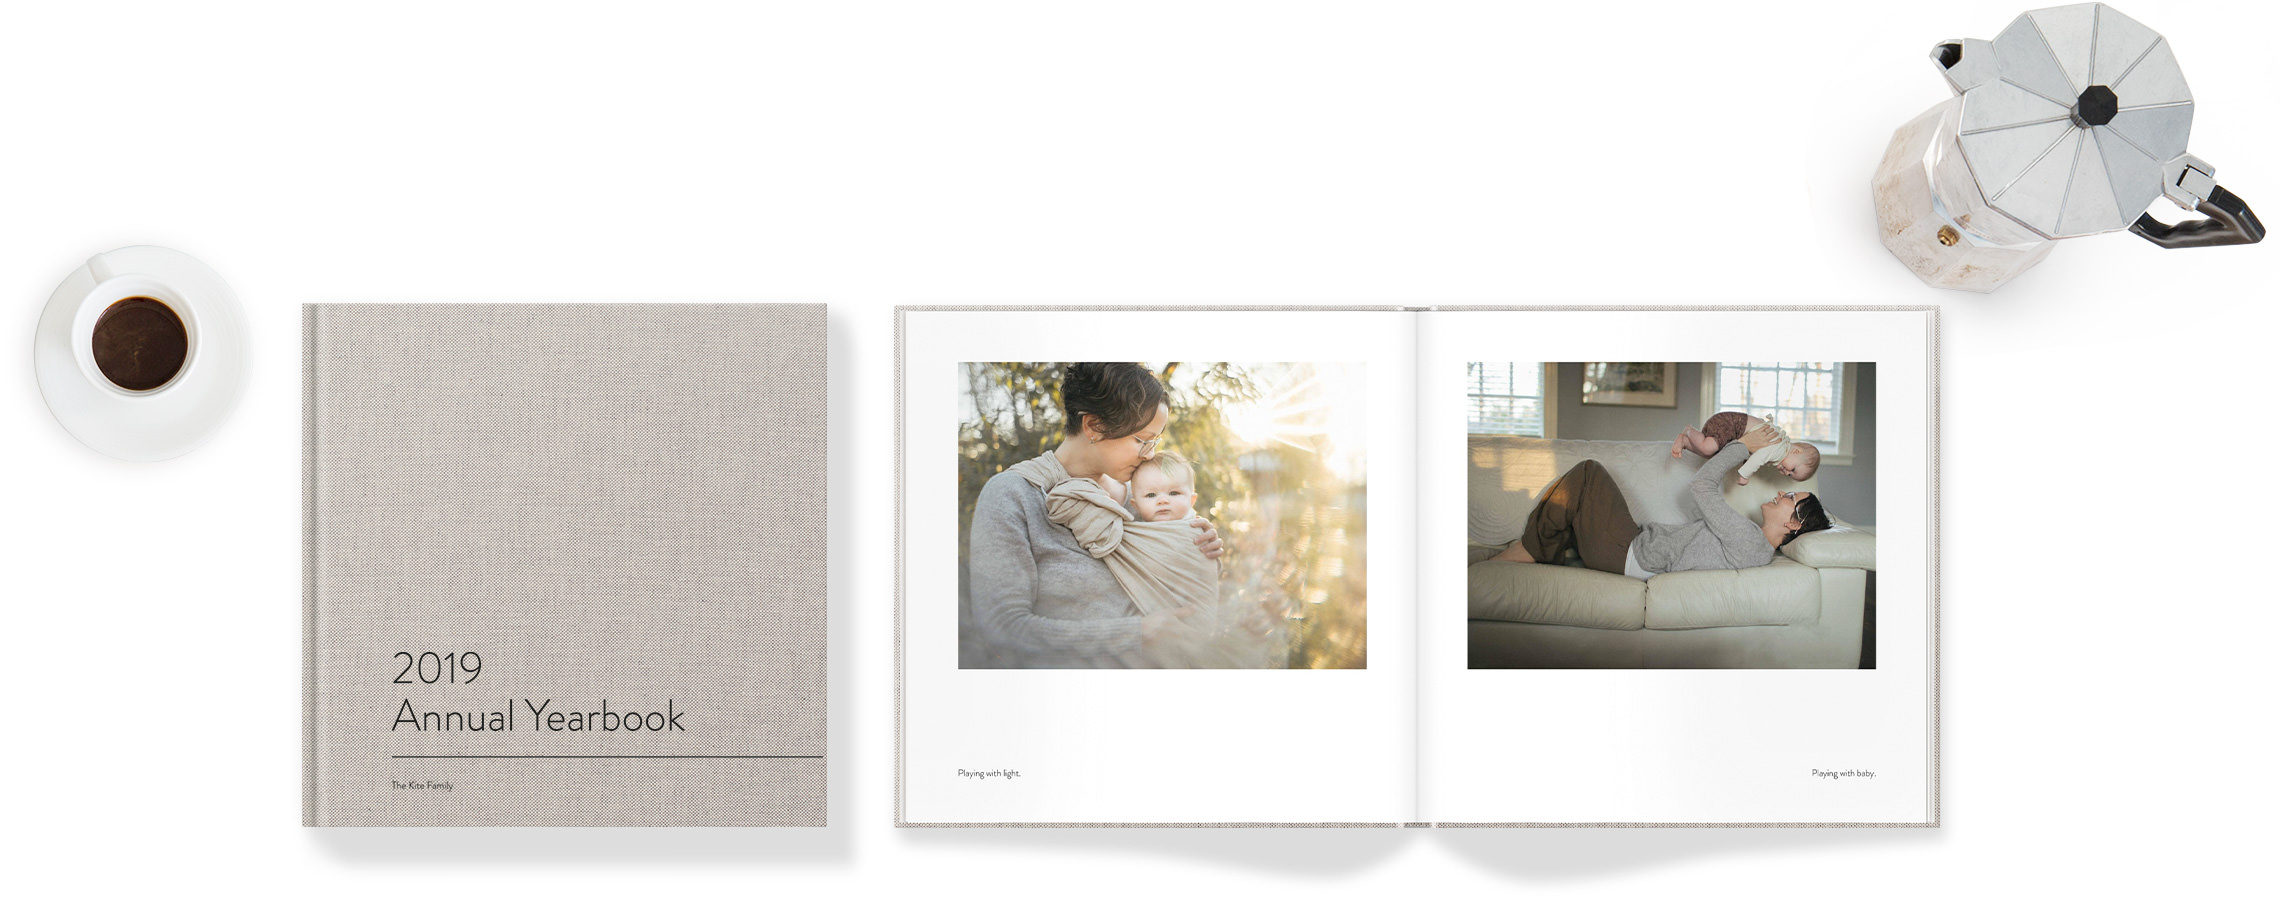 Square Photo Book with family images.